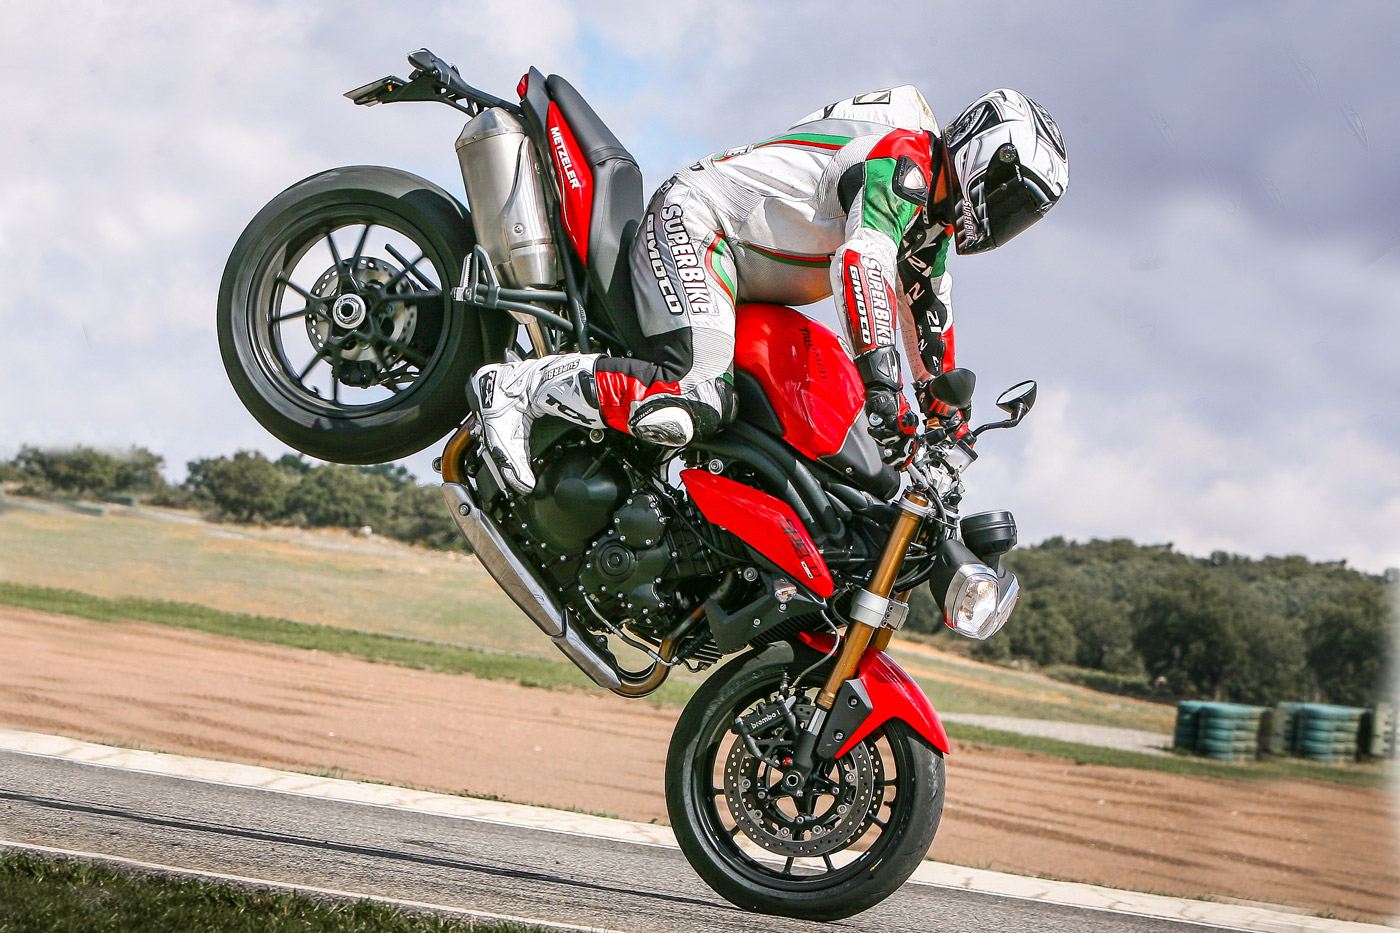 Triumph Speed Triple 2011 in stoppie